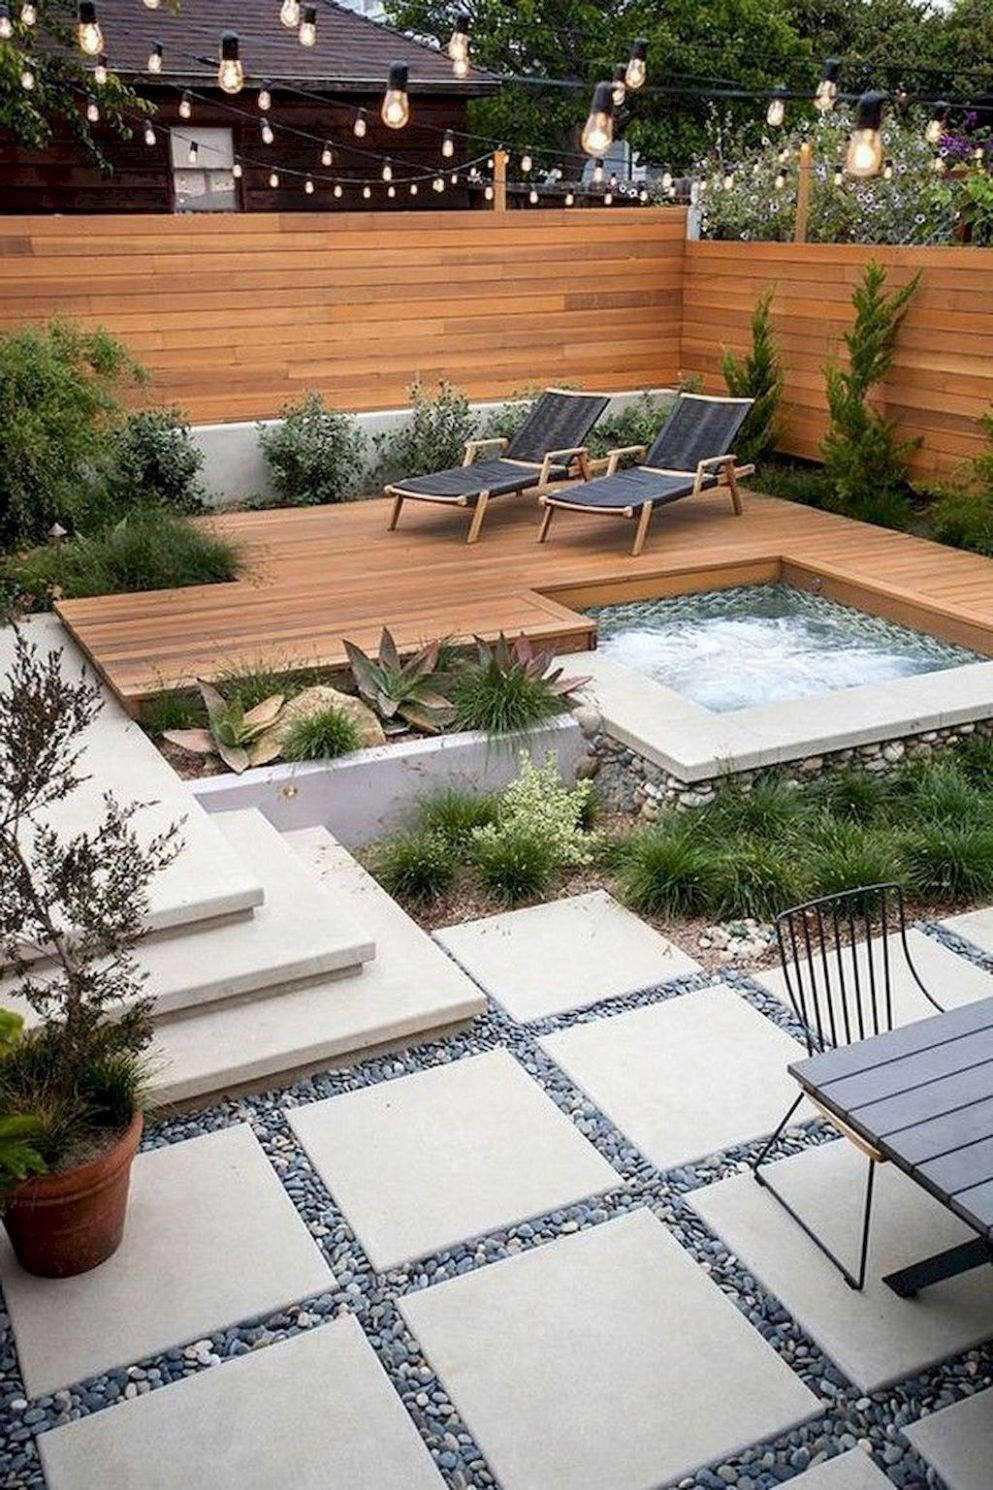 12+ Beautiful Small Backyard Makeover s Ideas On A Budget - WOWDECORA - backyard makeover ideas on a budget